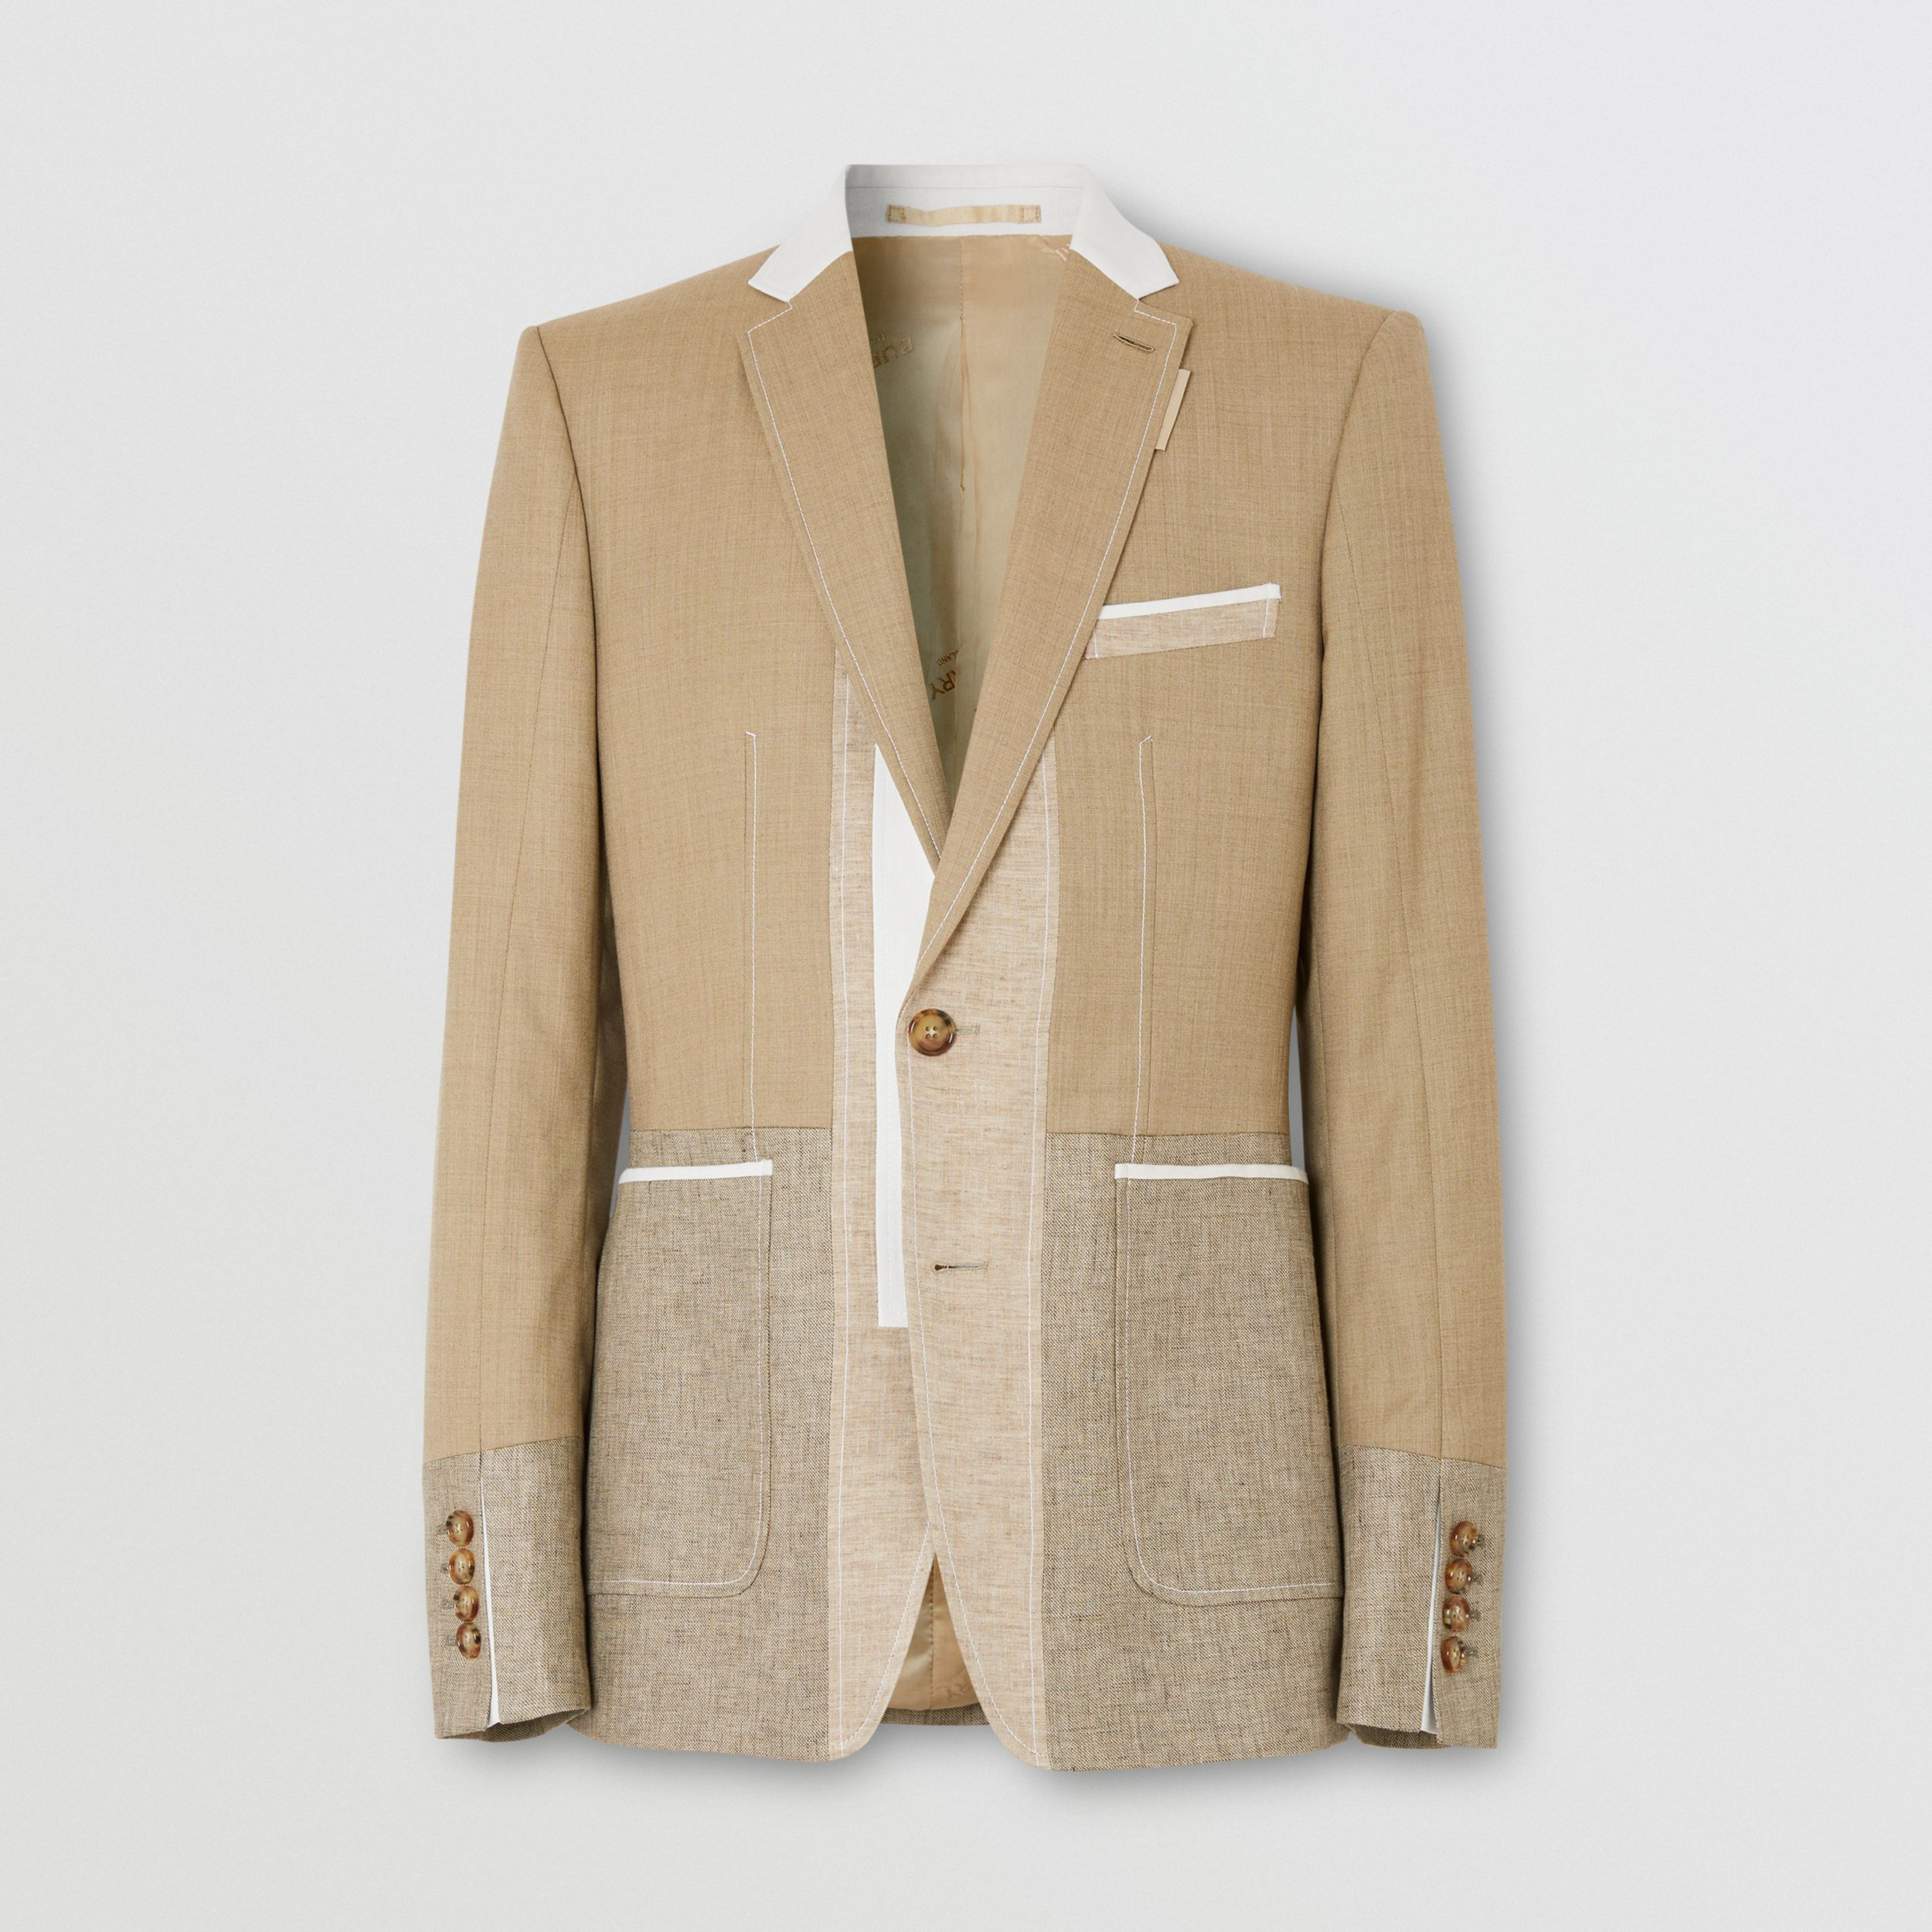 English Fit Wool Cashmere and Linen Tailored Jacket in Pecan Melange - Men | Burberry - 4